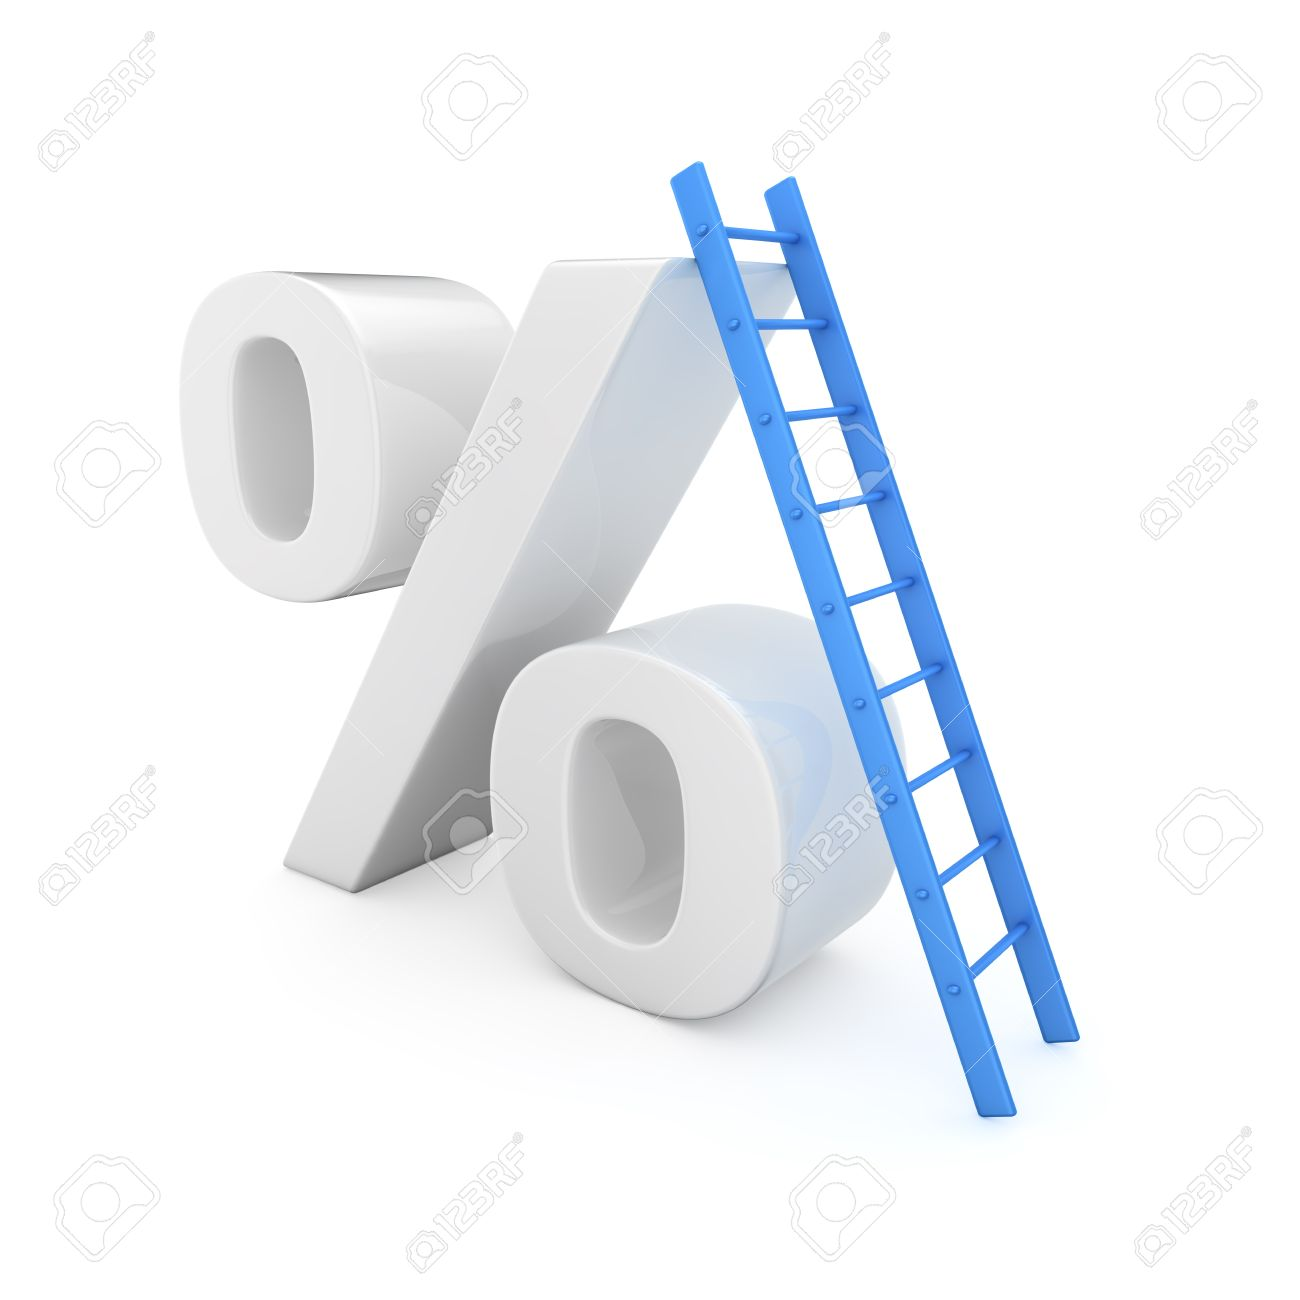 Blue Ladder On The High Percentage Symbol Stock Photo, Picture And.